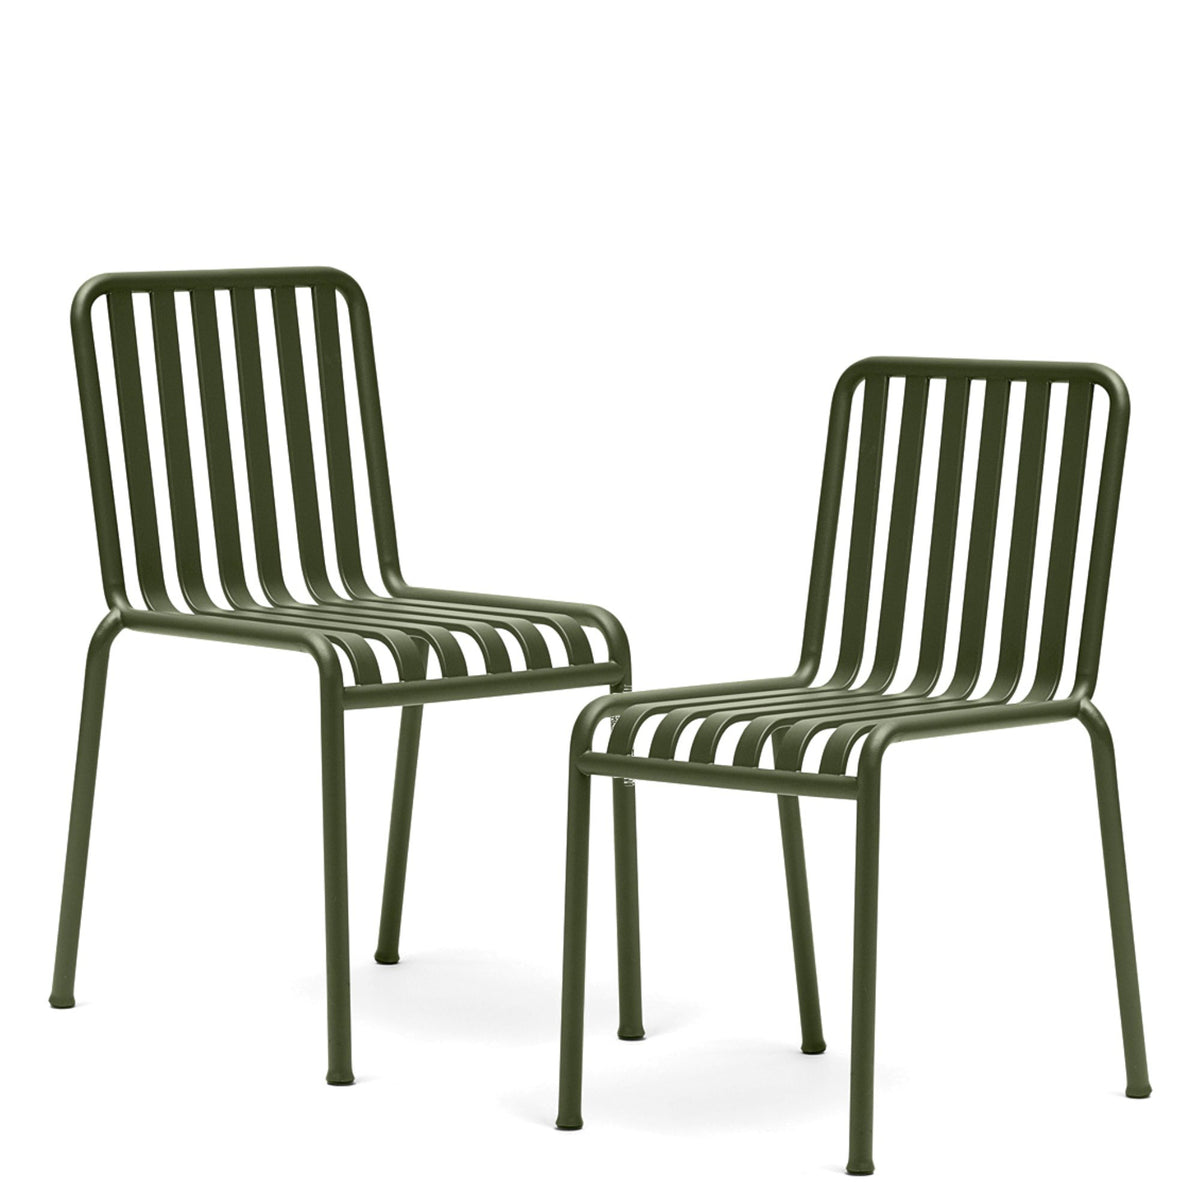 HAY Office Pair of Palissade Chairs Olive Green